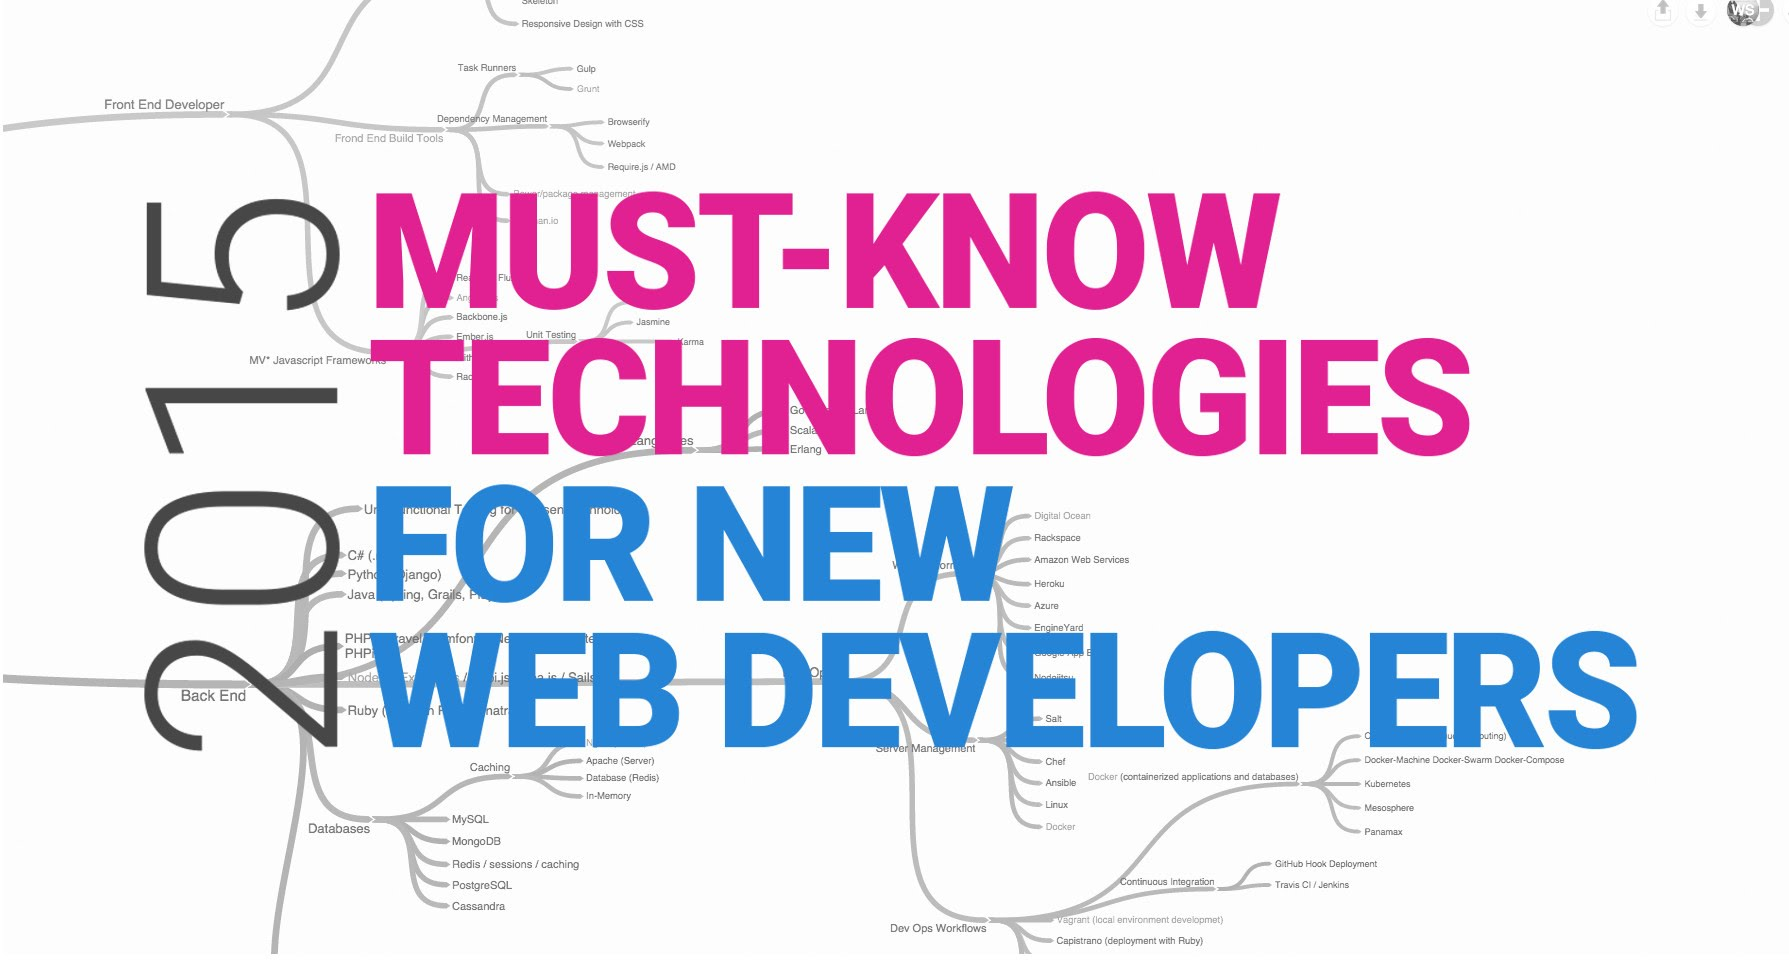 WATCH THIS IF YOU WANT TO BECOME A WEB DEVELOPER! – Web Development